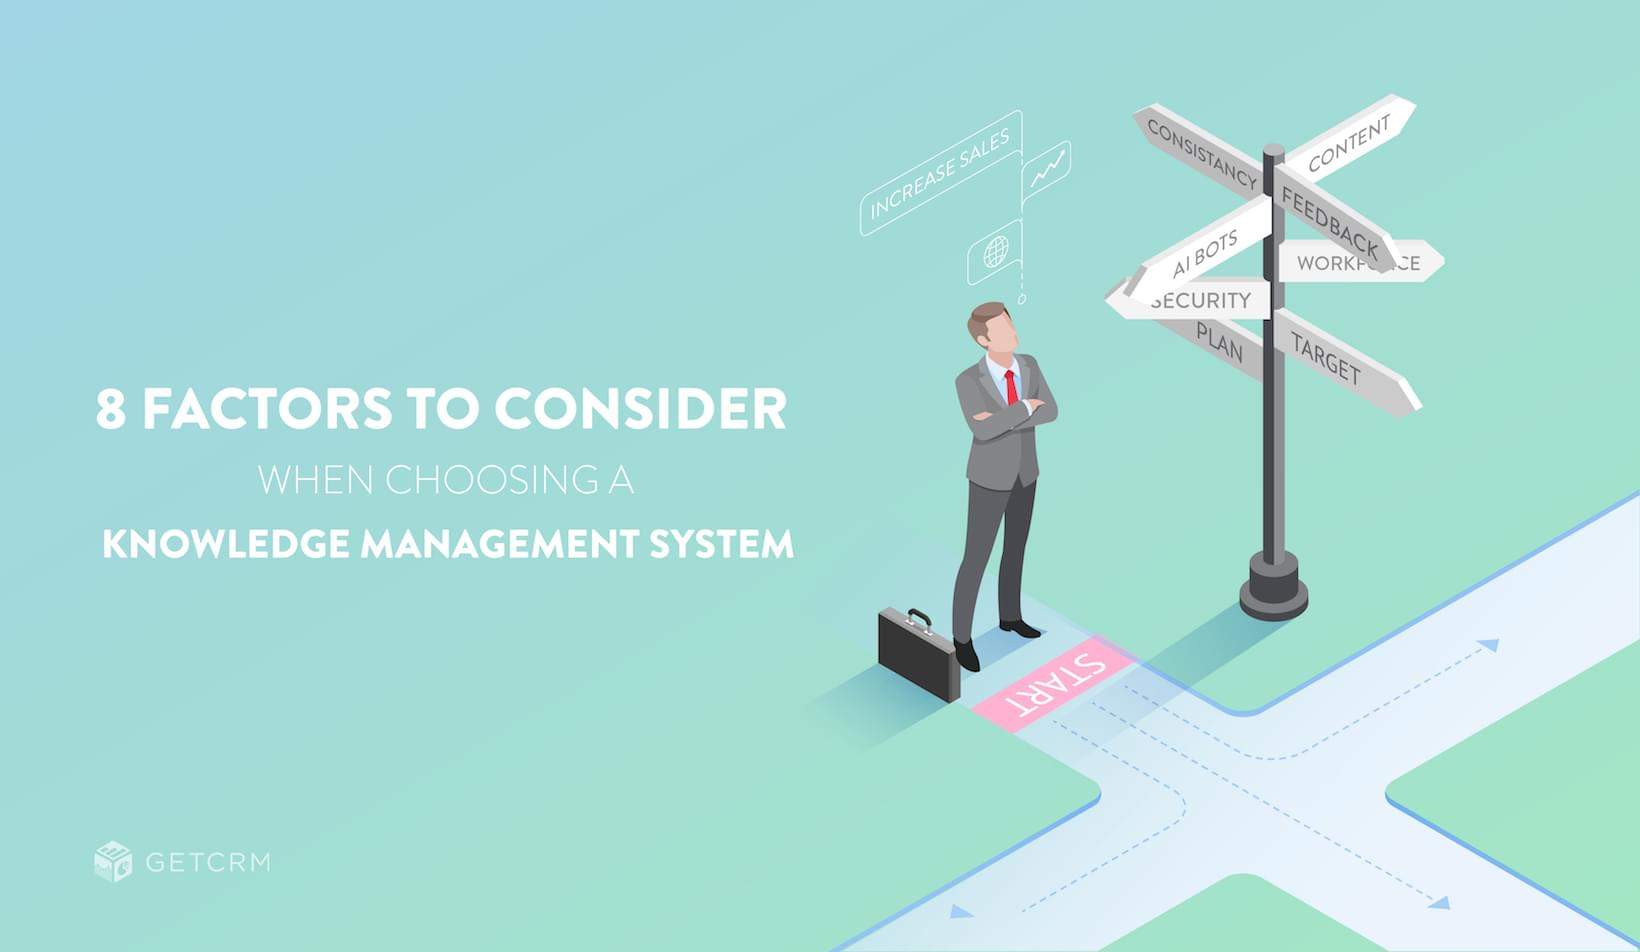 Eight Factors to Consider When Choosing a Knowledge Management System